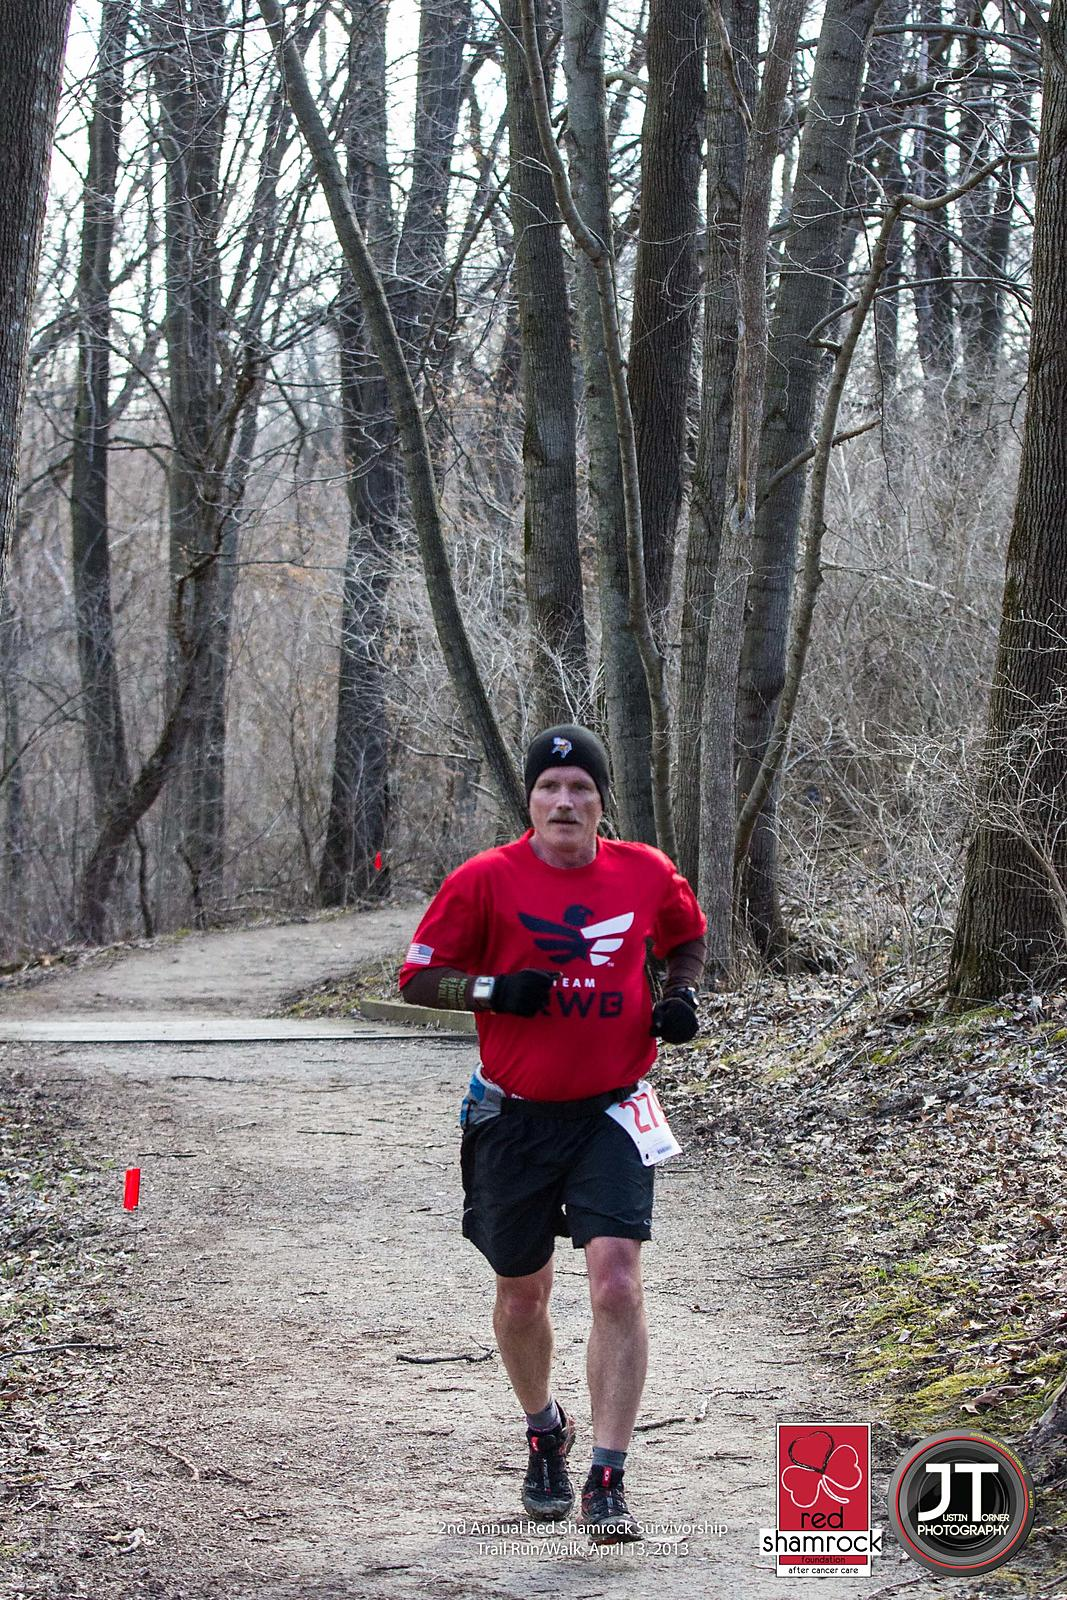 2nd Annual Red Shamrock Survivorship Trail Run/Walk, April 13, 2013 photos